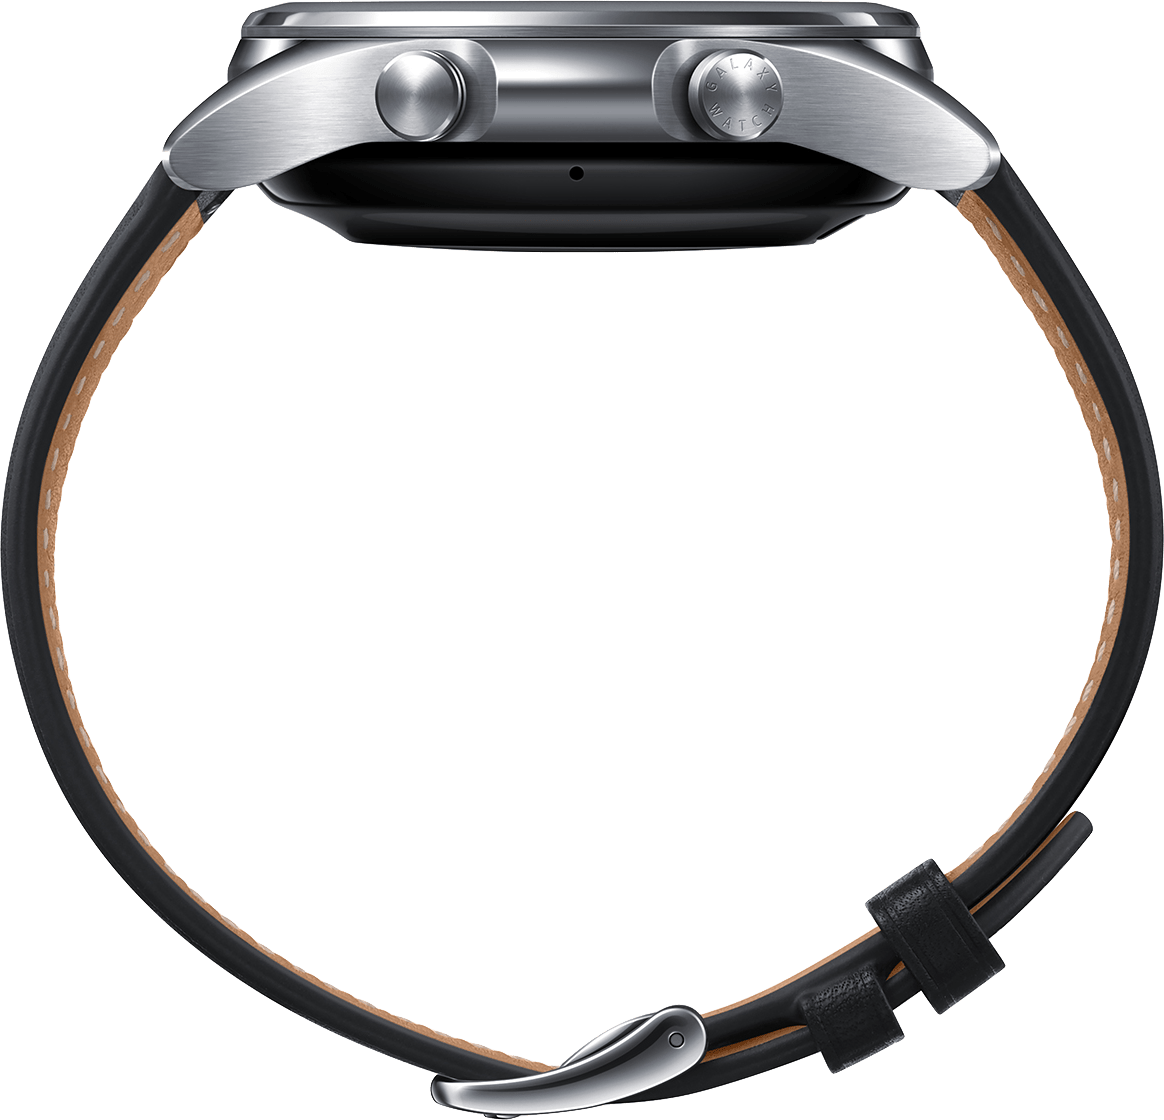 Mystic Silver Samsung Galaxy Watch 3, 41mm Stainless steel case, Real leather band.4